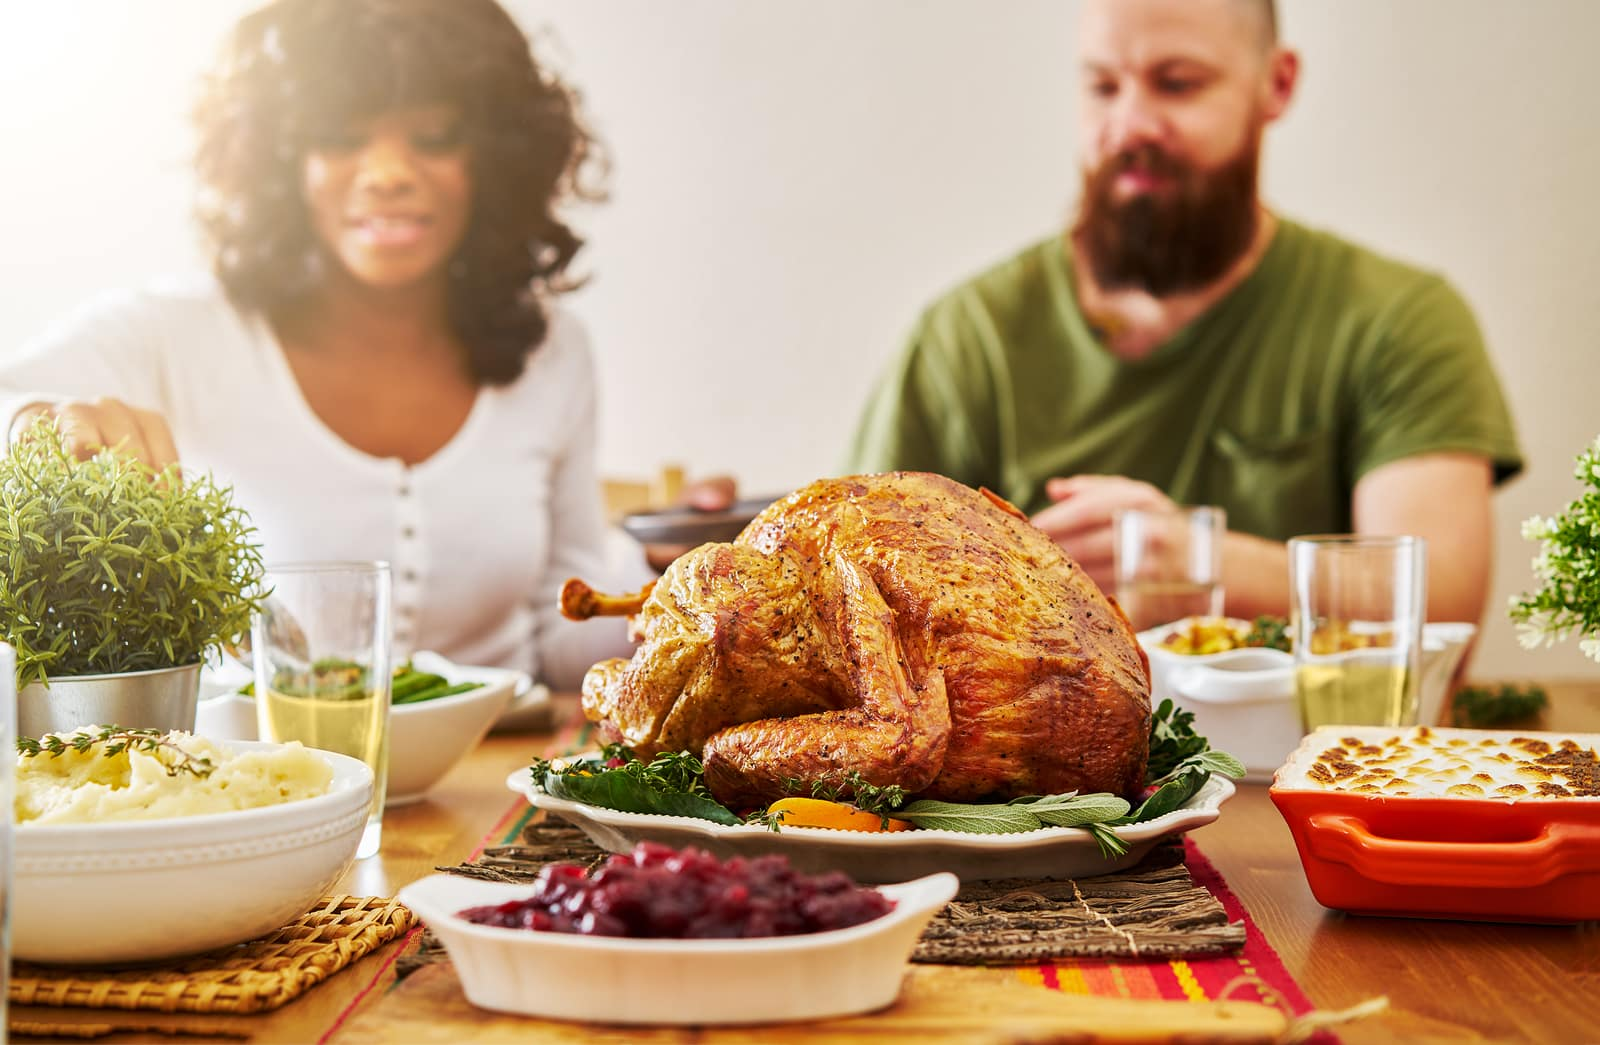 Chew more to beat bloat on Thanksgiving